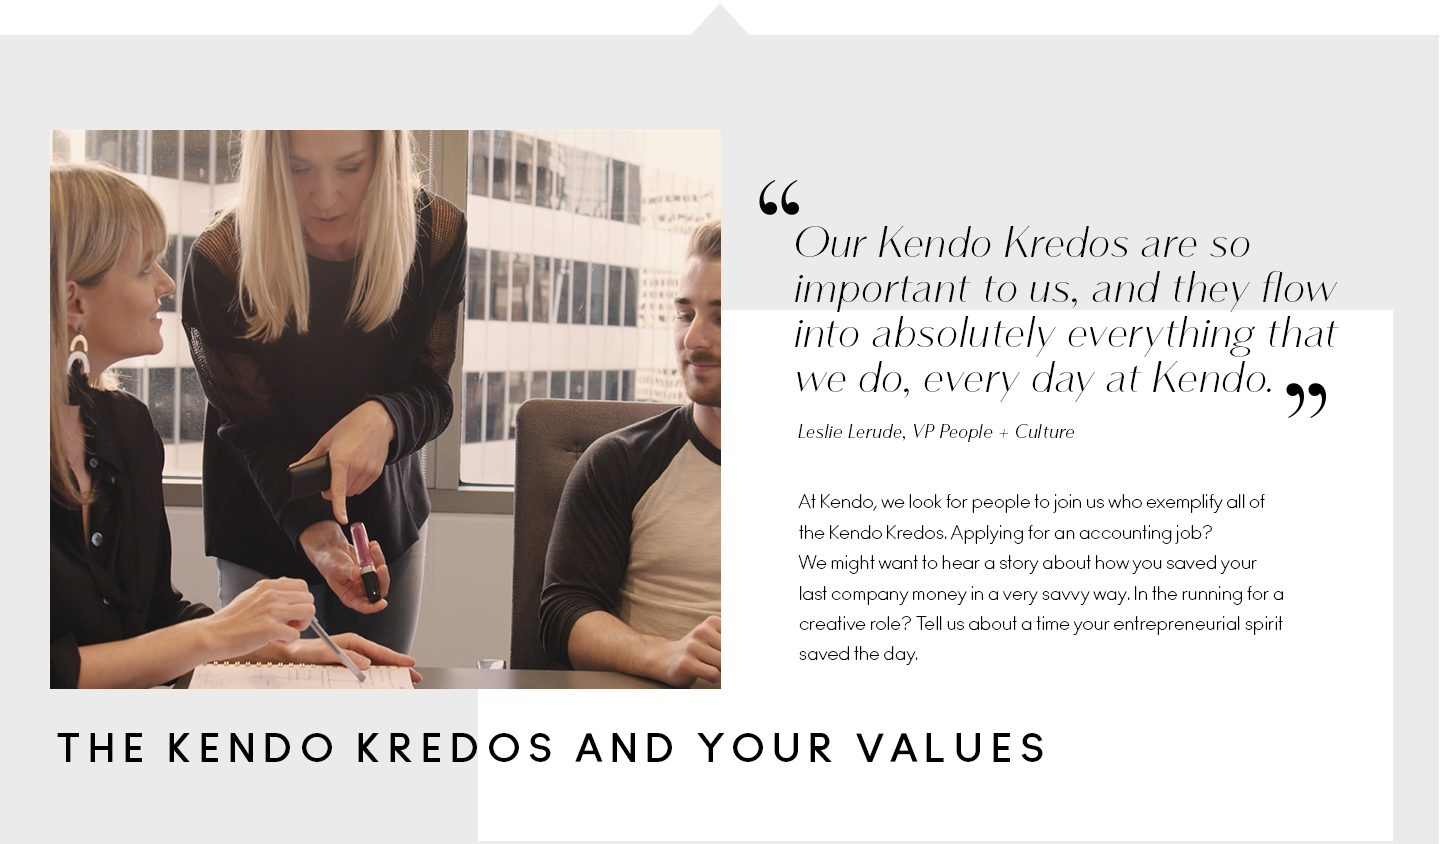 kendo brands careers